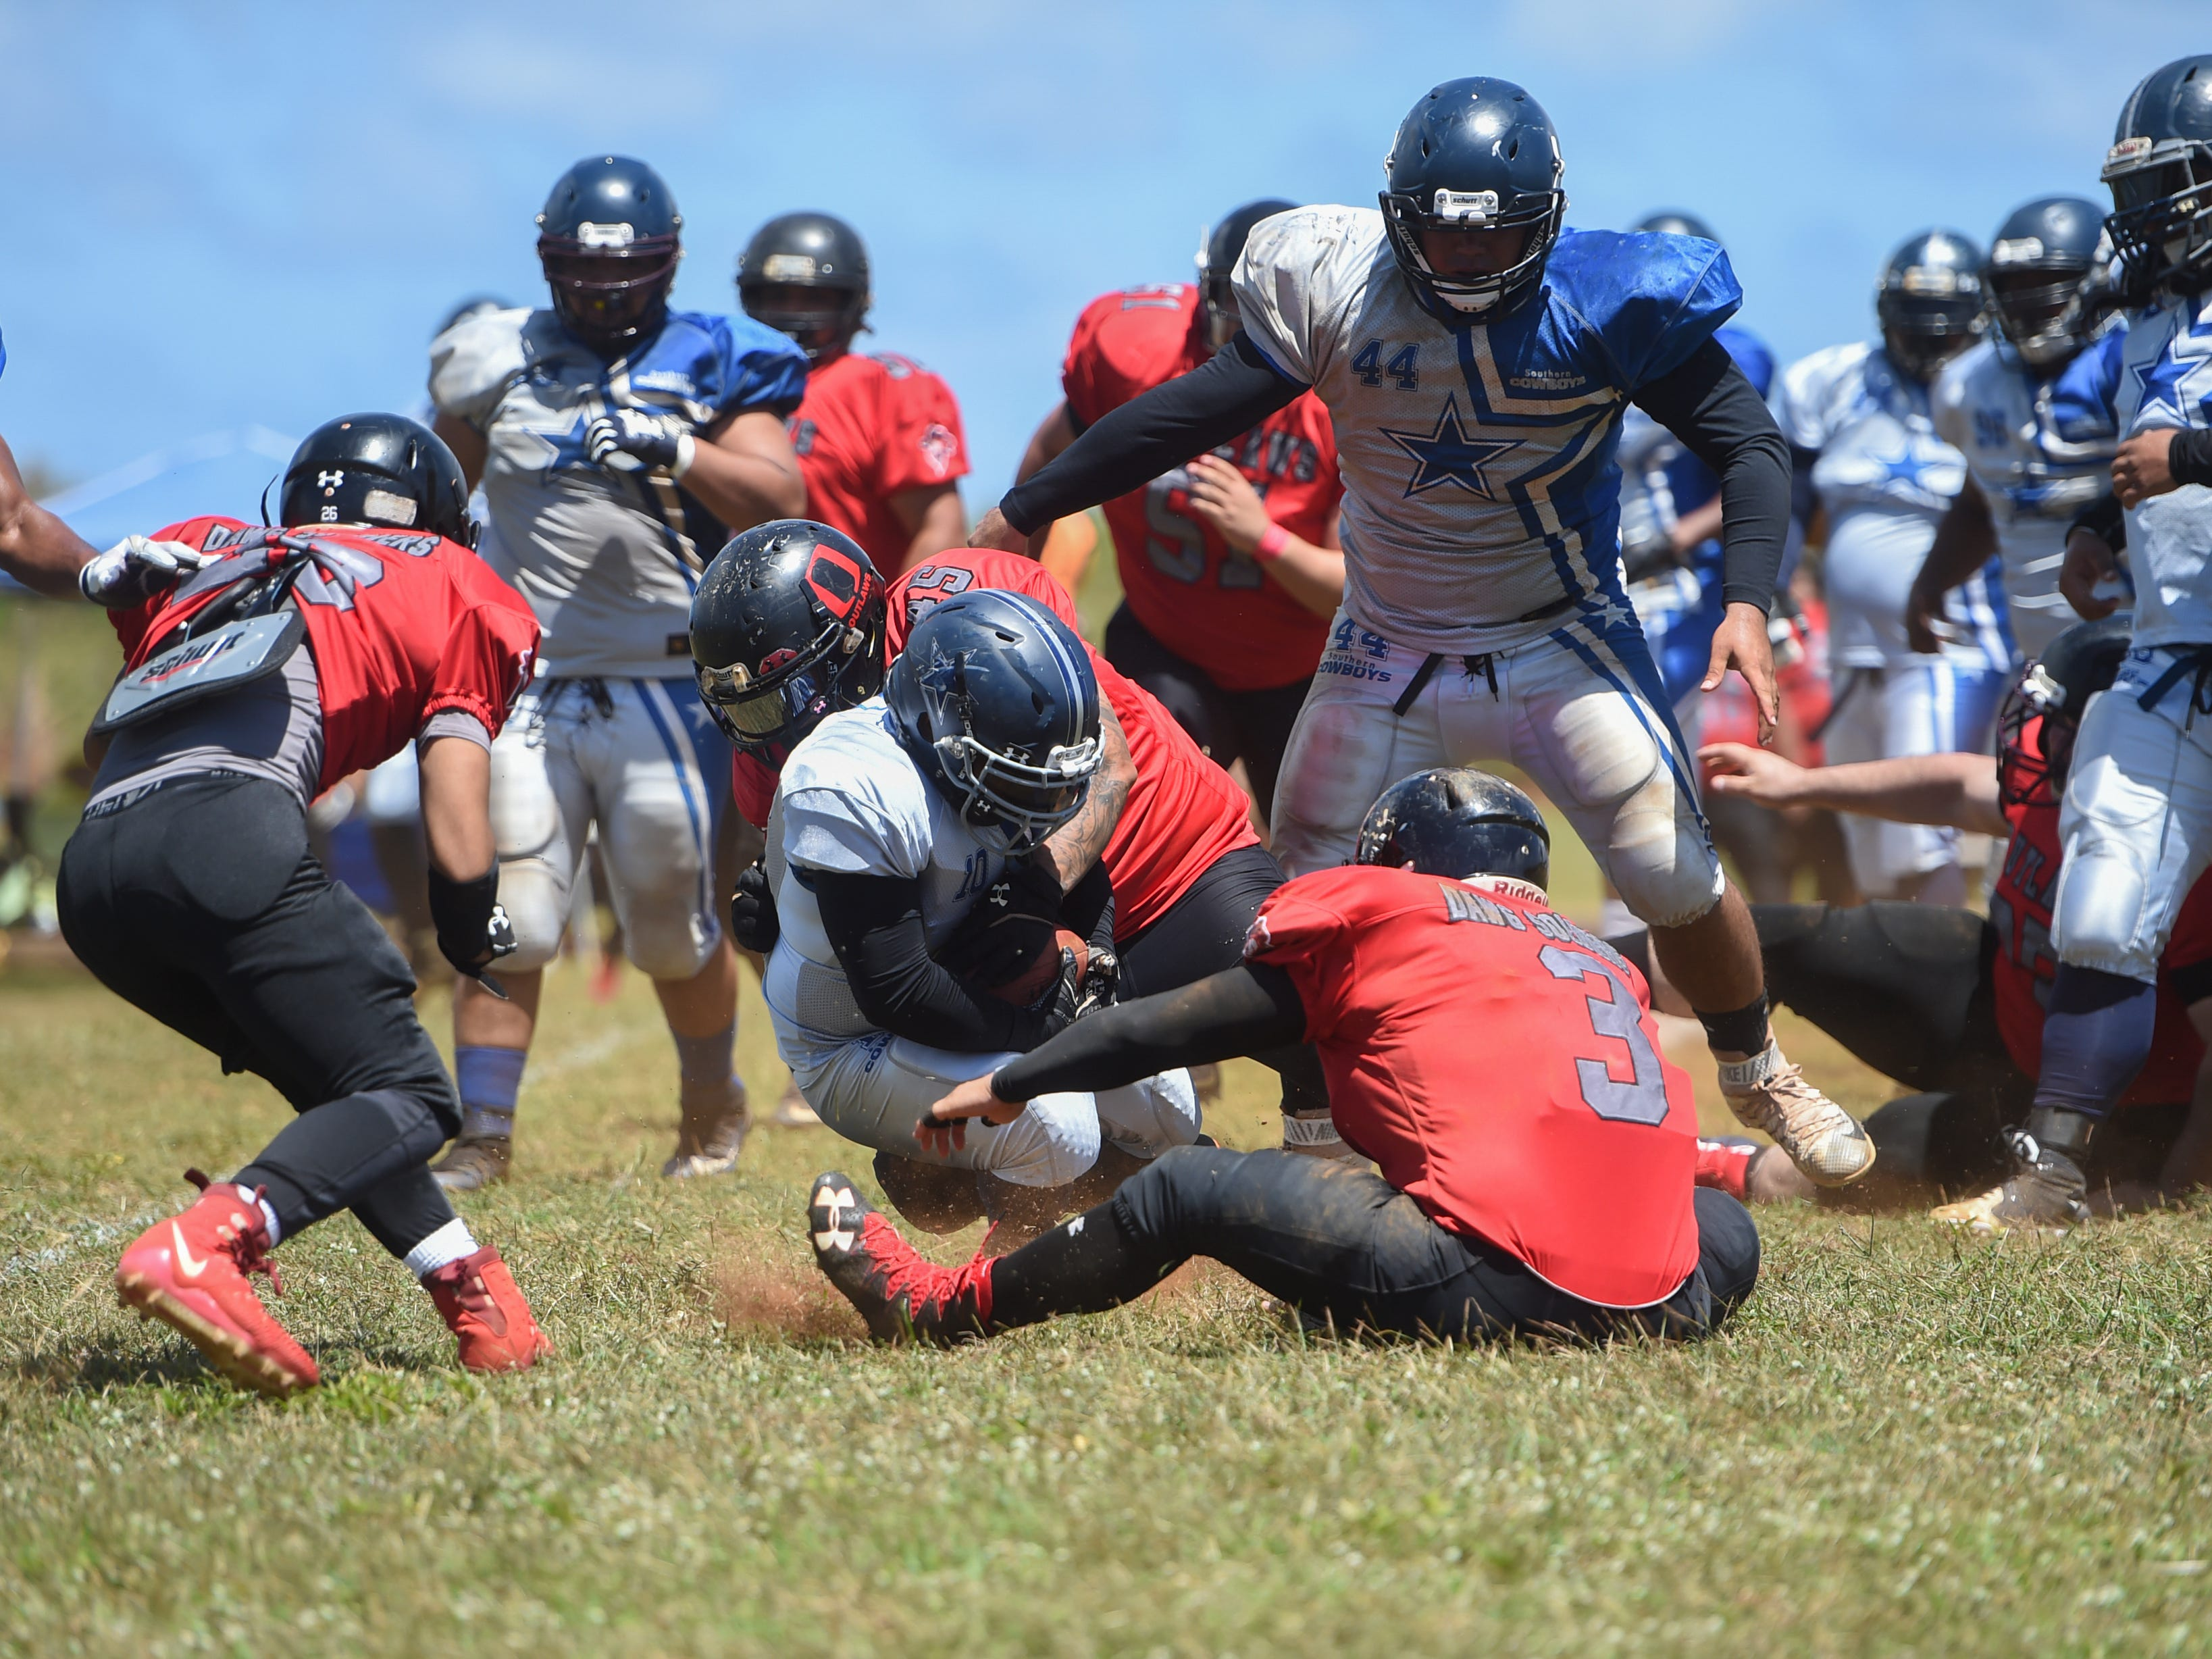 The Southern Cowboys' Robert Tedtaotao (10) is taken down by the Outlaws' defense during a Budweiser Guahan Varsity Football League game at Eagles Field in Mangilao, March 9, 2019.